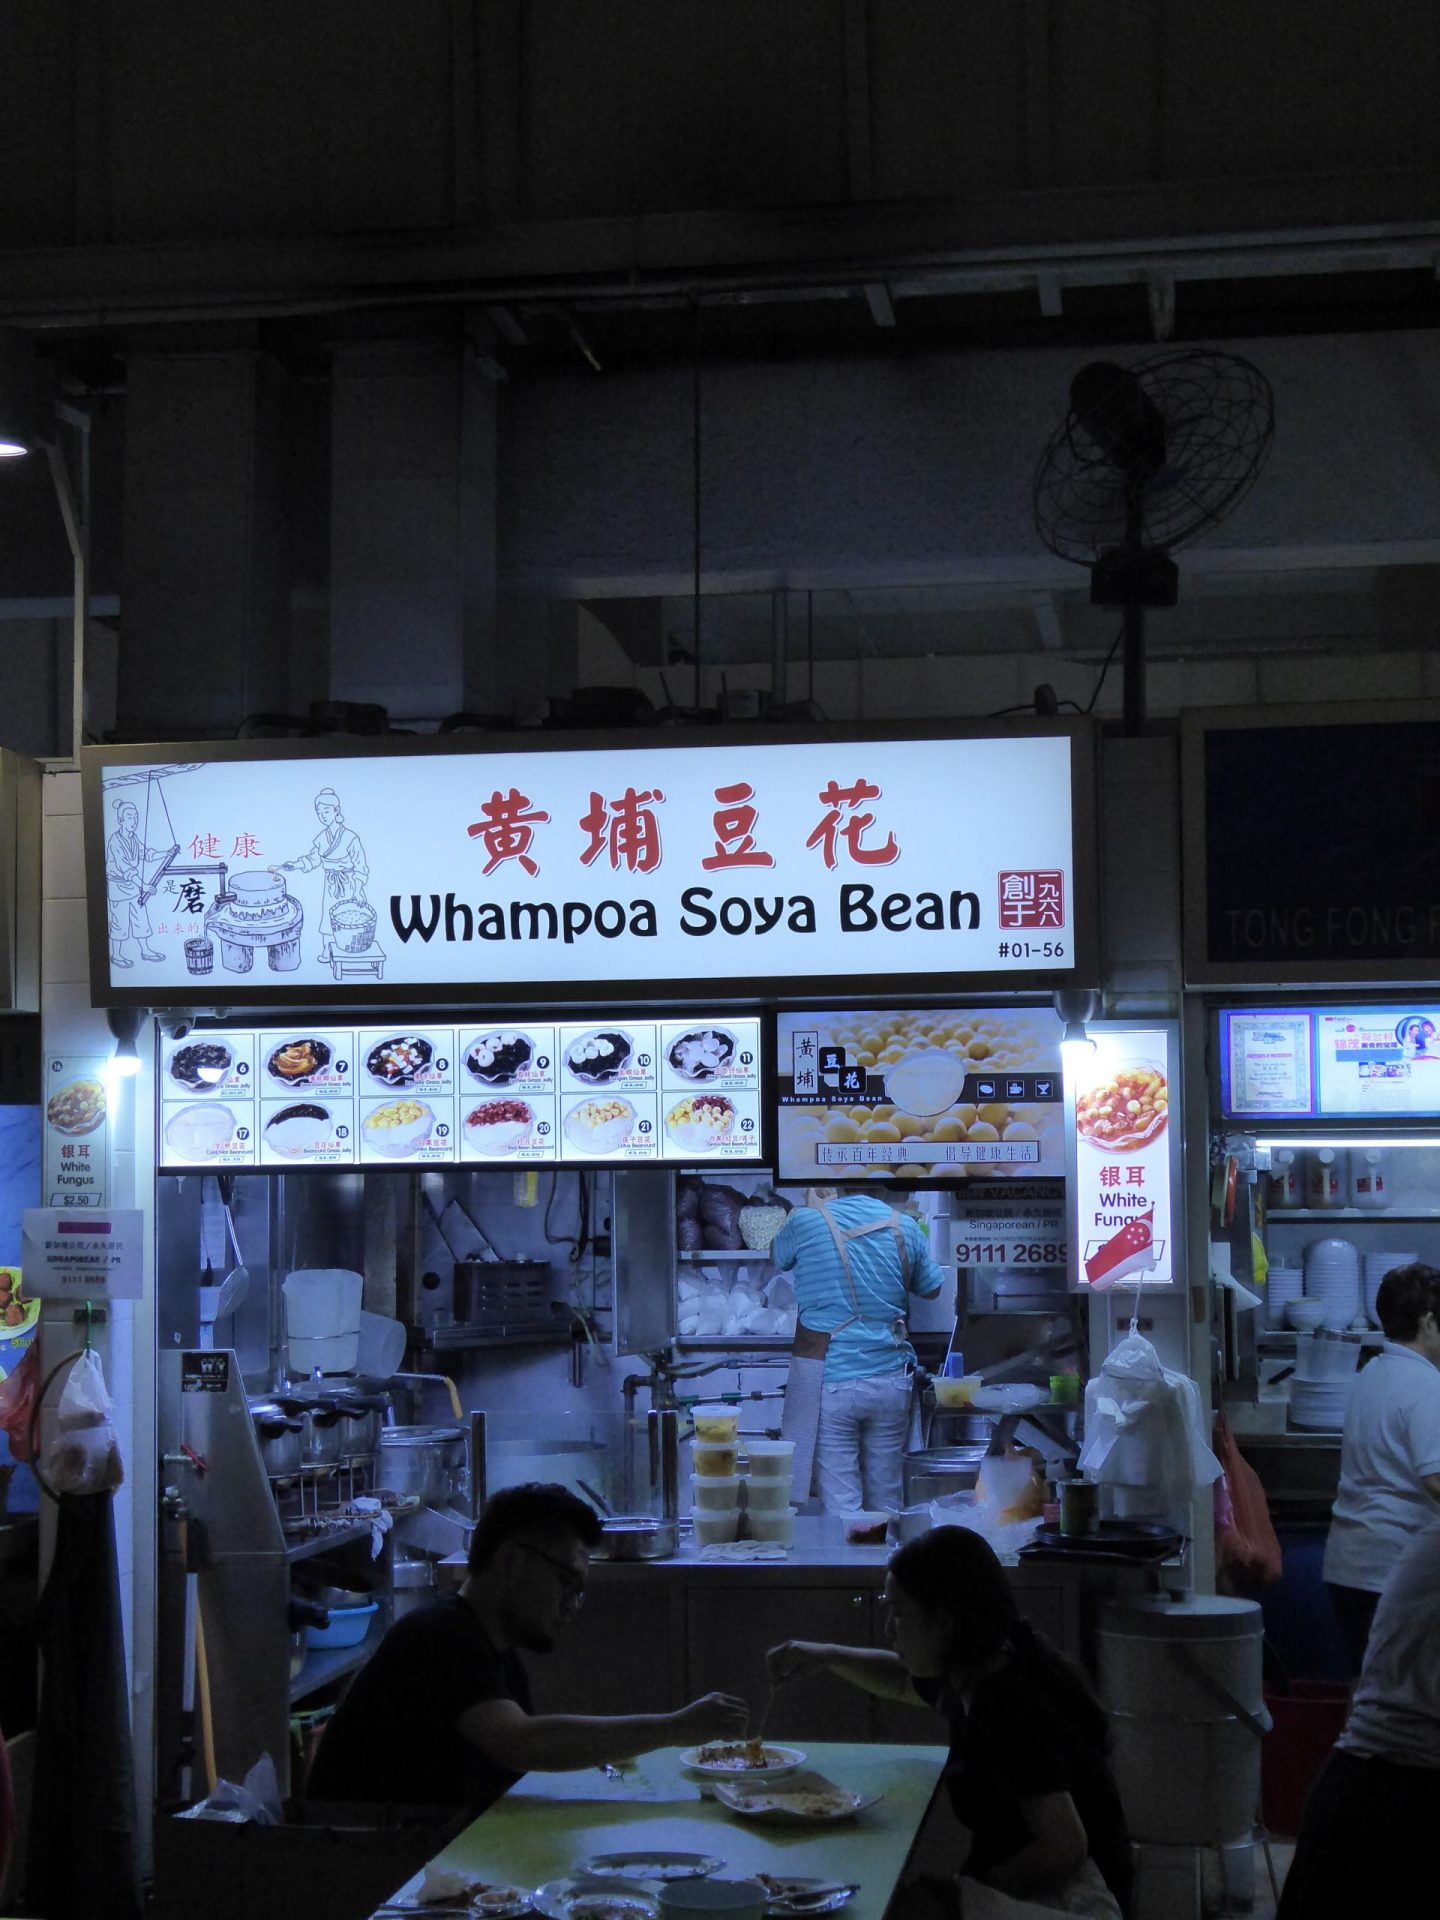 The Whampoa Soya Bean Stall. Table with people eating in the foreground.